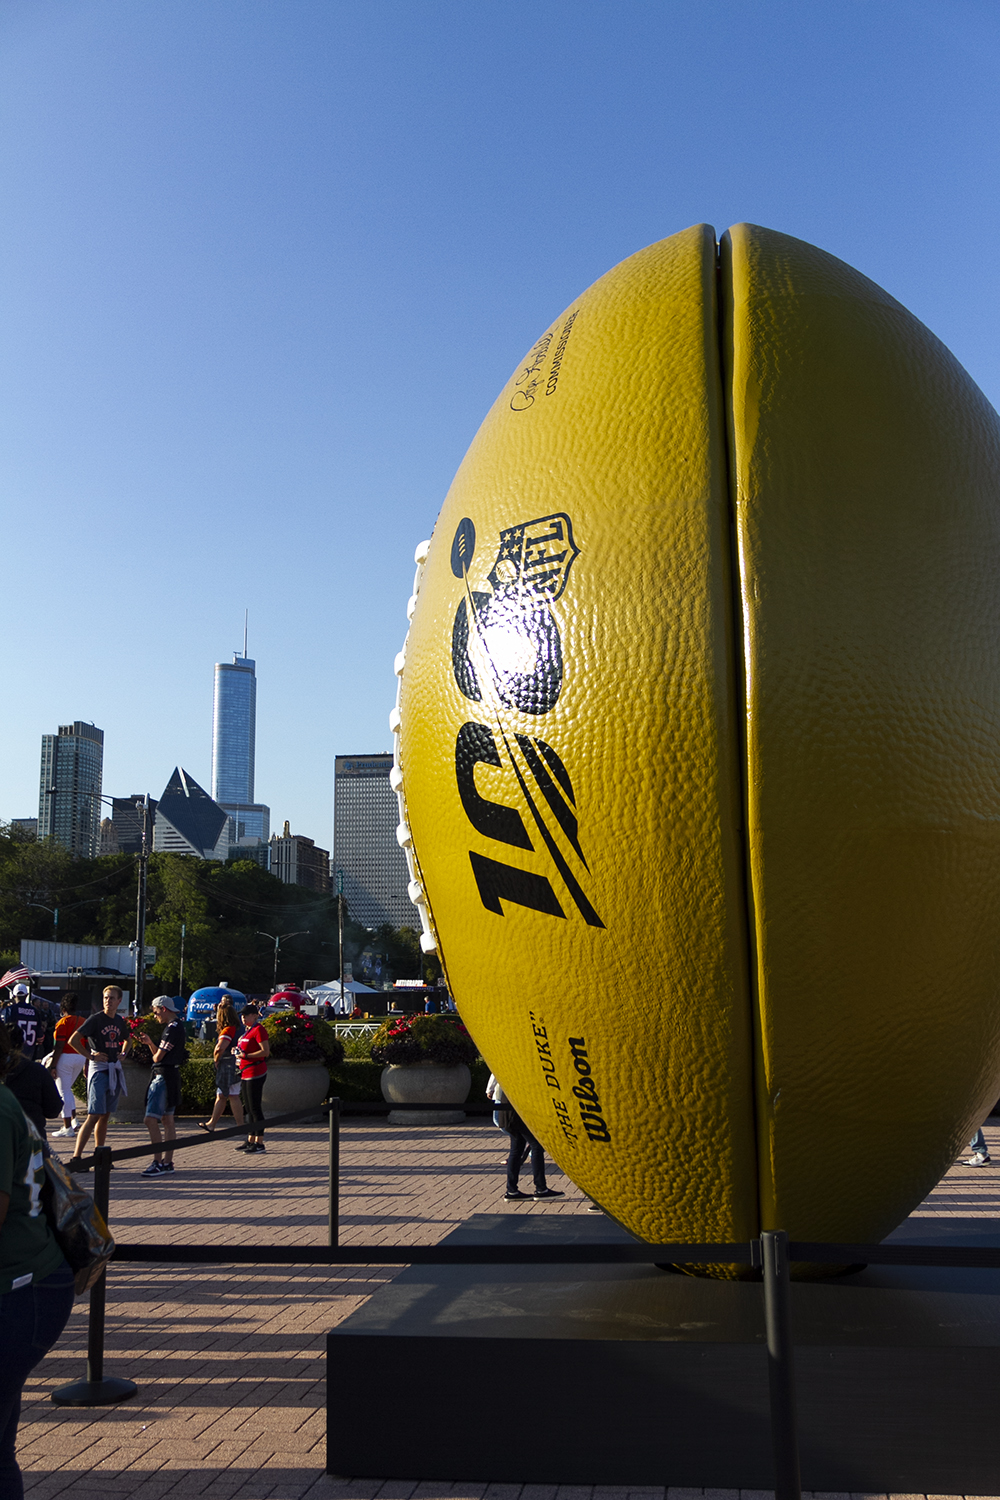 The+NFL+Kickoff+Experience+in+Grant+Park+celebrated+the+100th+NFL+season+with+celebrity+appearances+and+activities+for+fans.